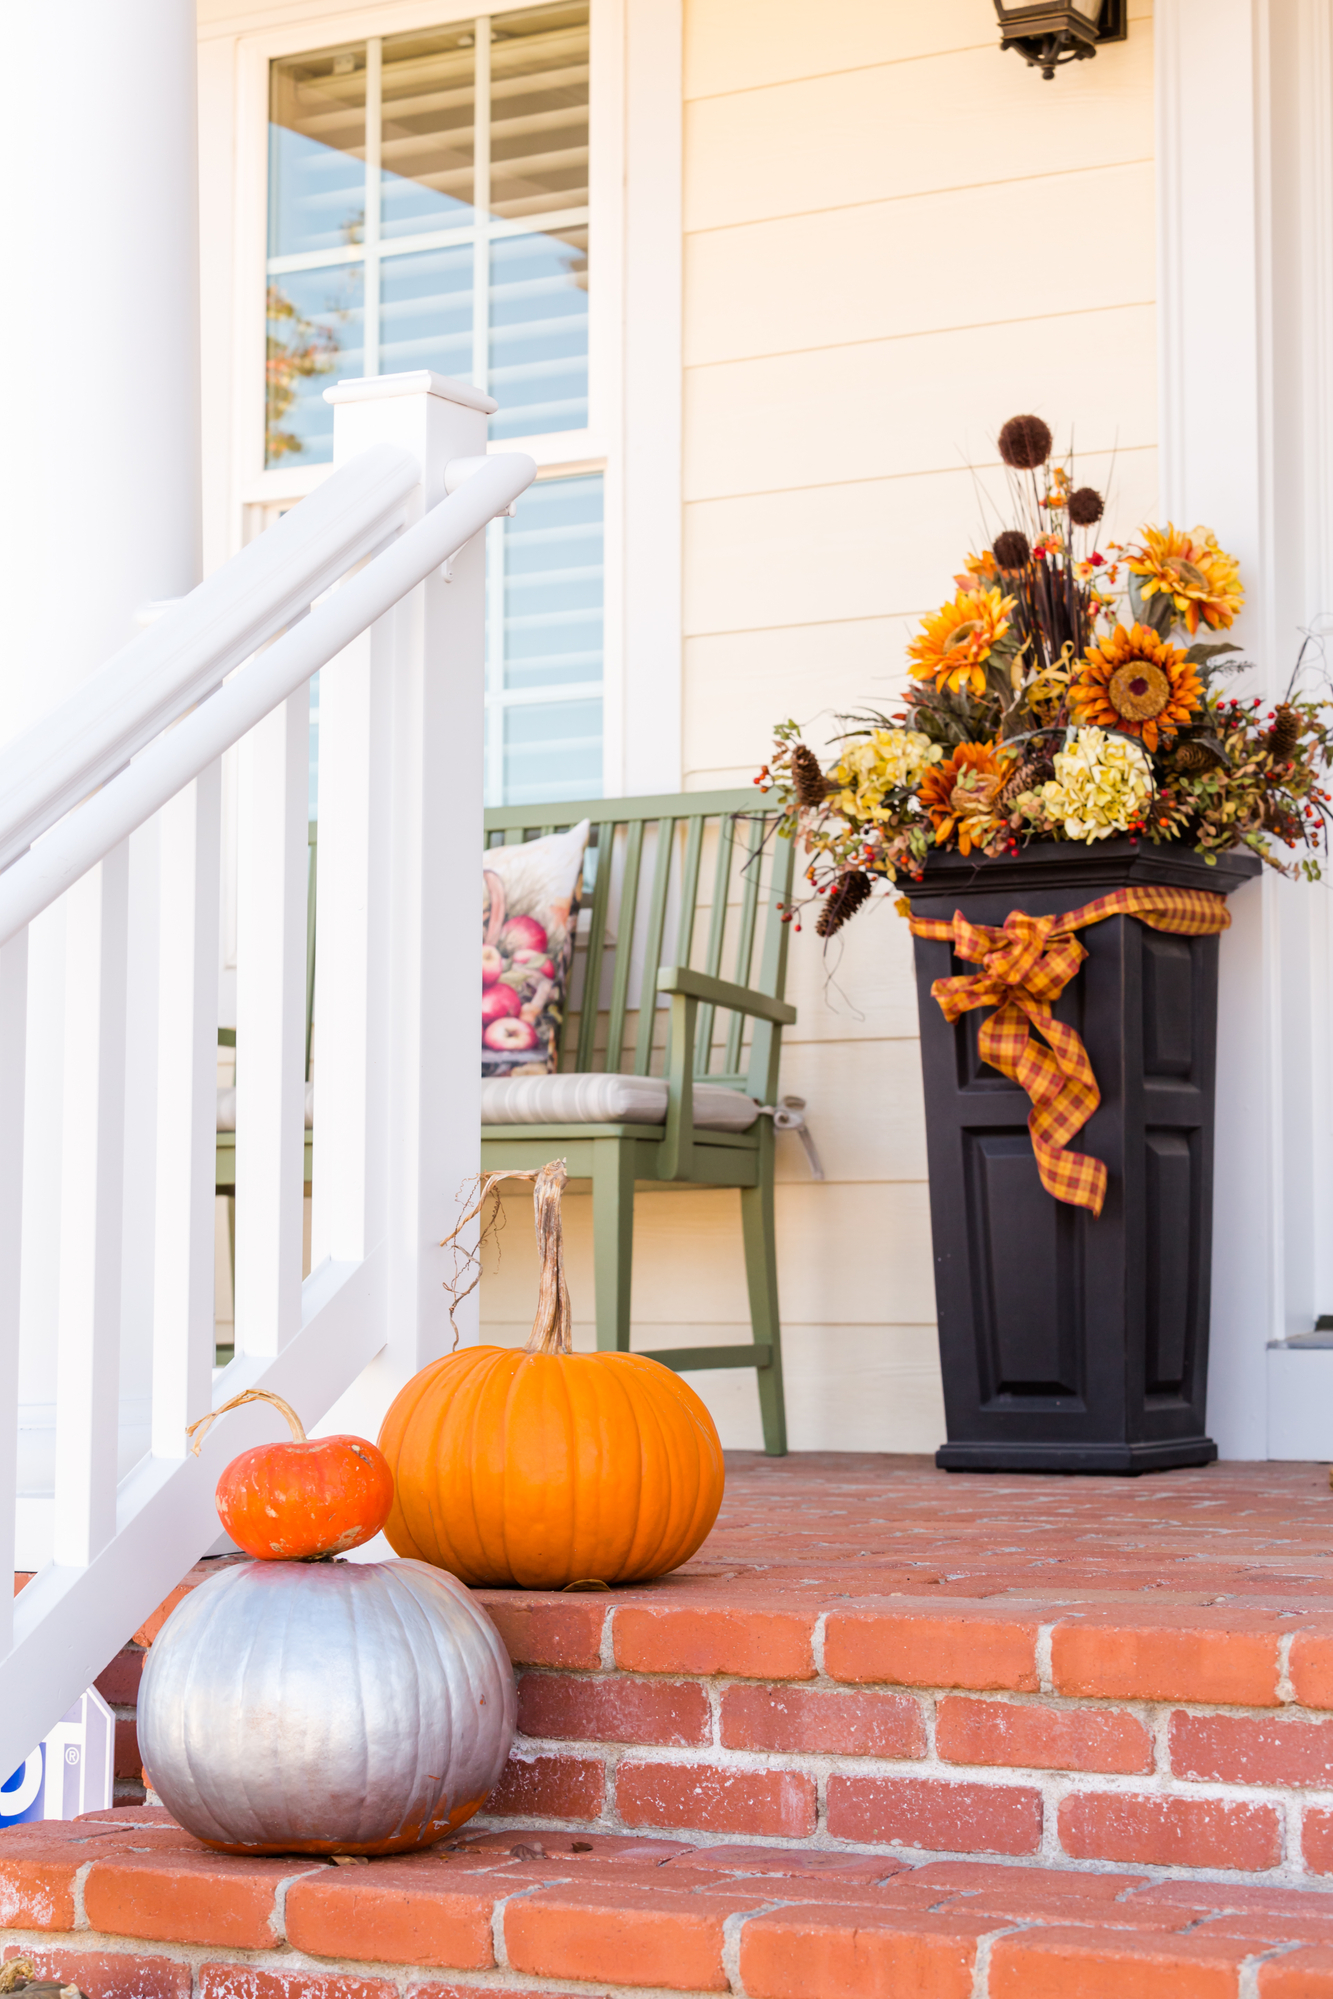 Fall Decor on Front Porch decorated for Halloween